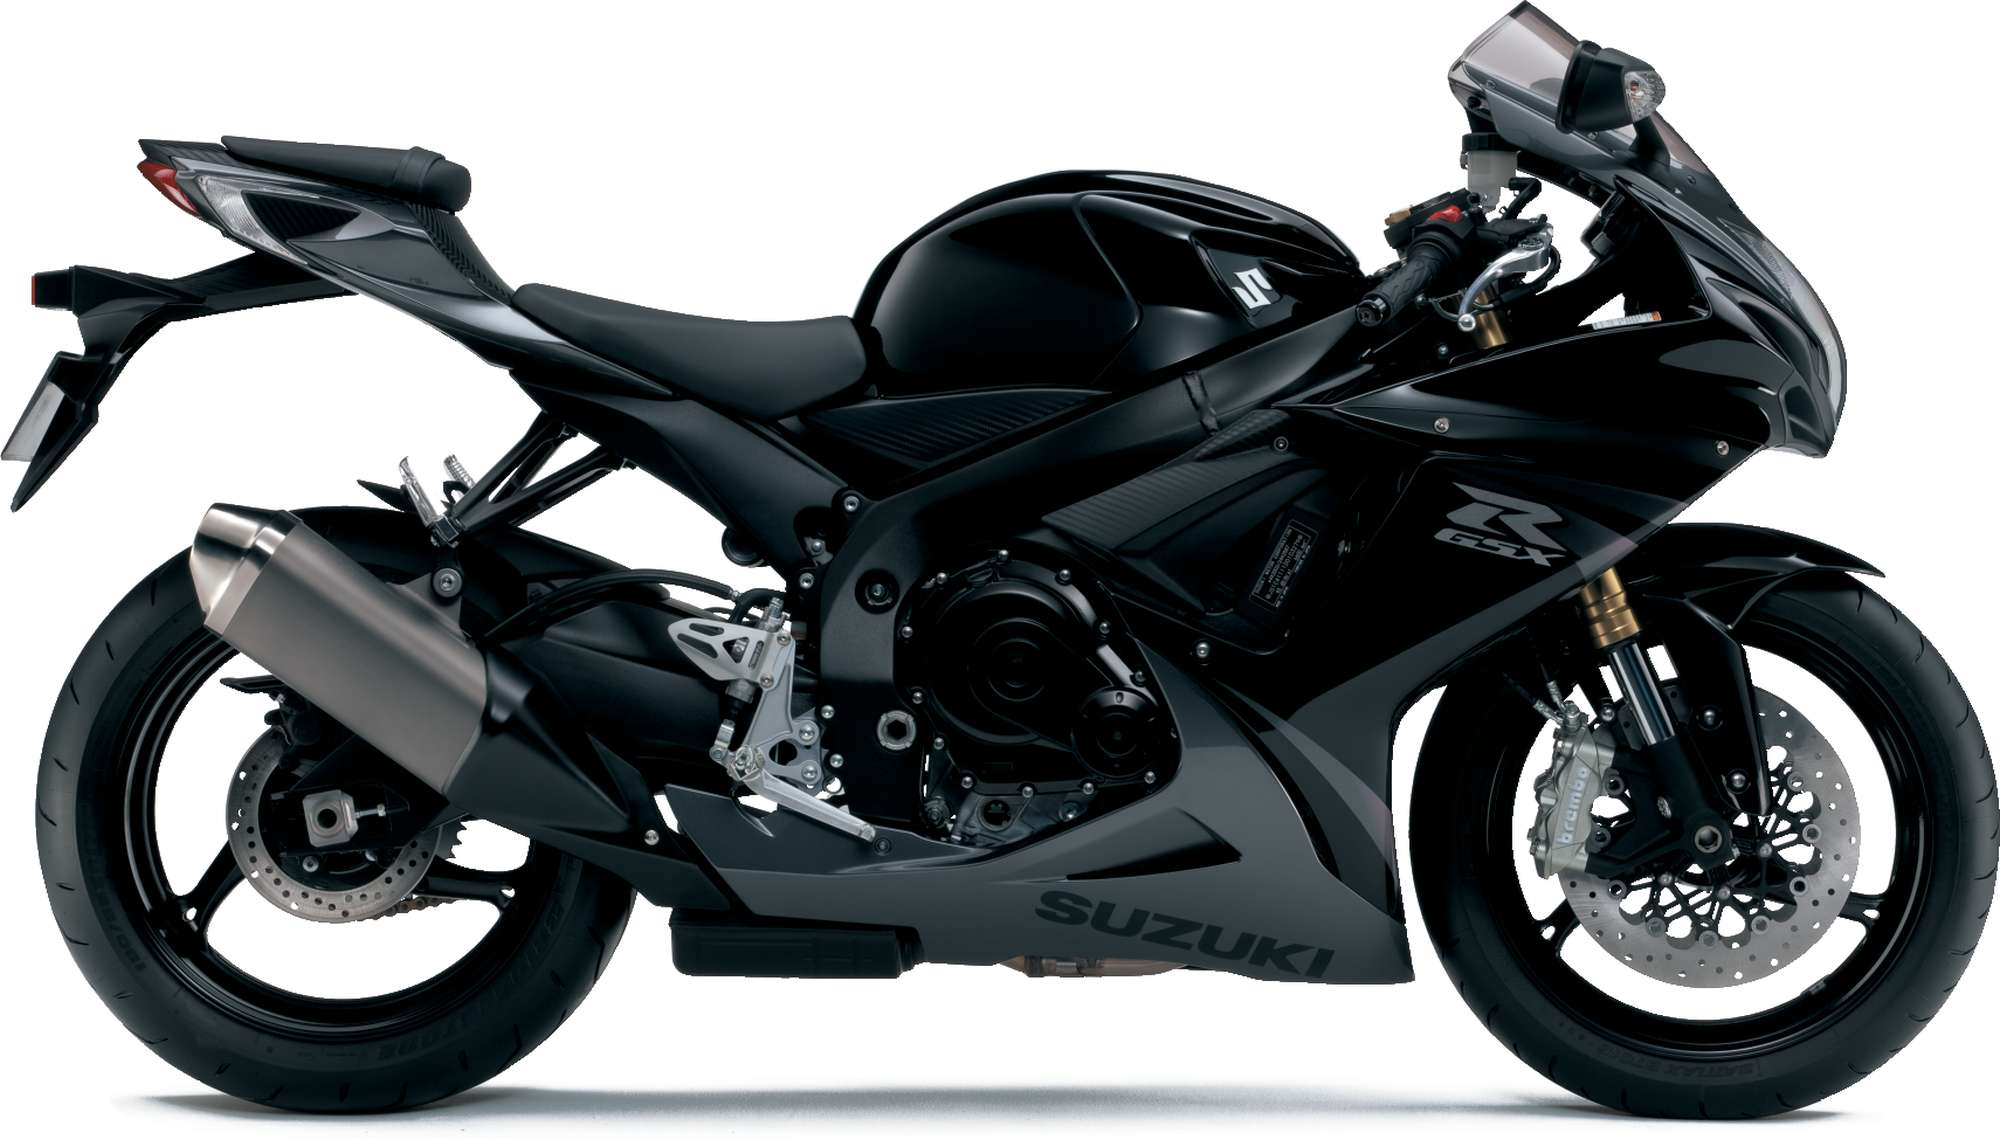 suzuki gsx r 750 test bilder technische daten. Black Bedroom Furniture Sets. Home Design Ideas